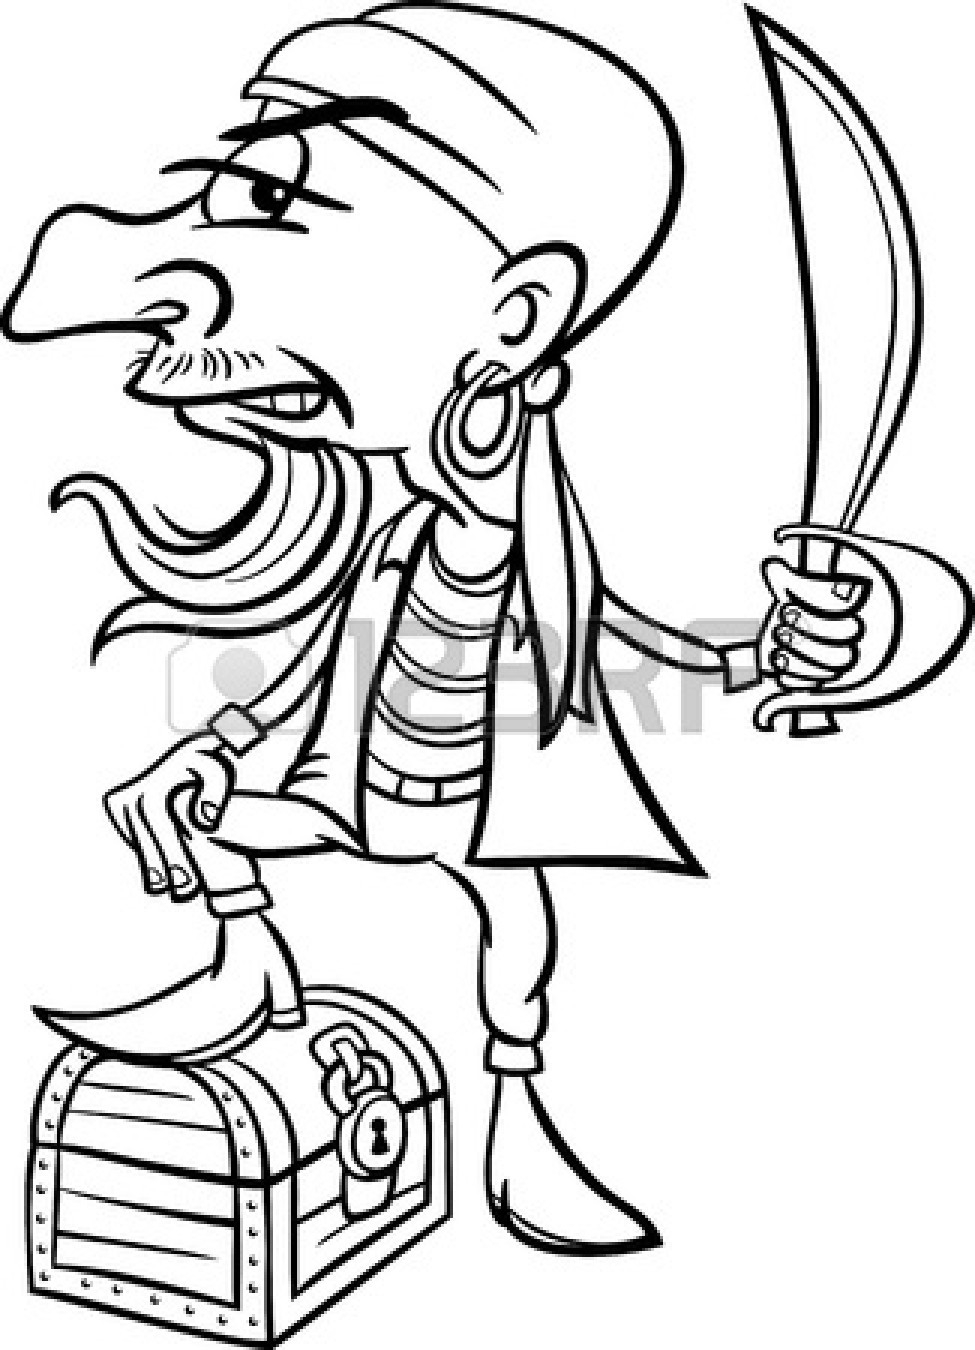 Pirate Treasure Black And White Clipart#1950109.